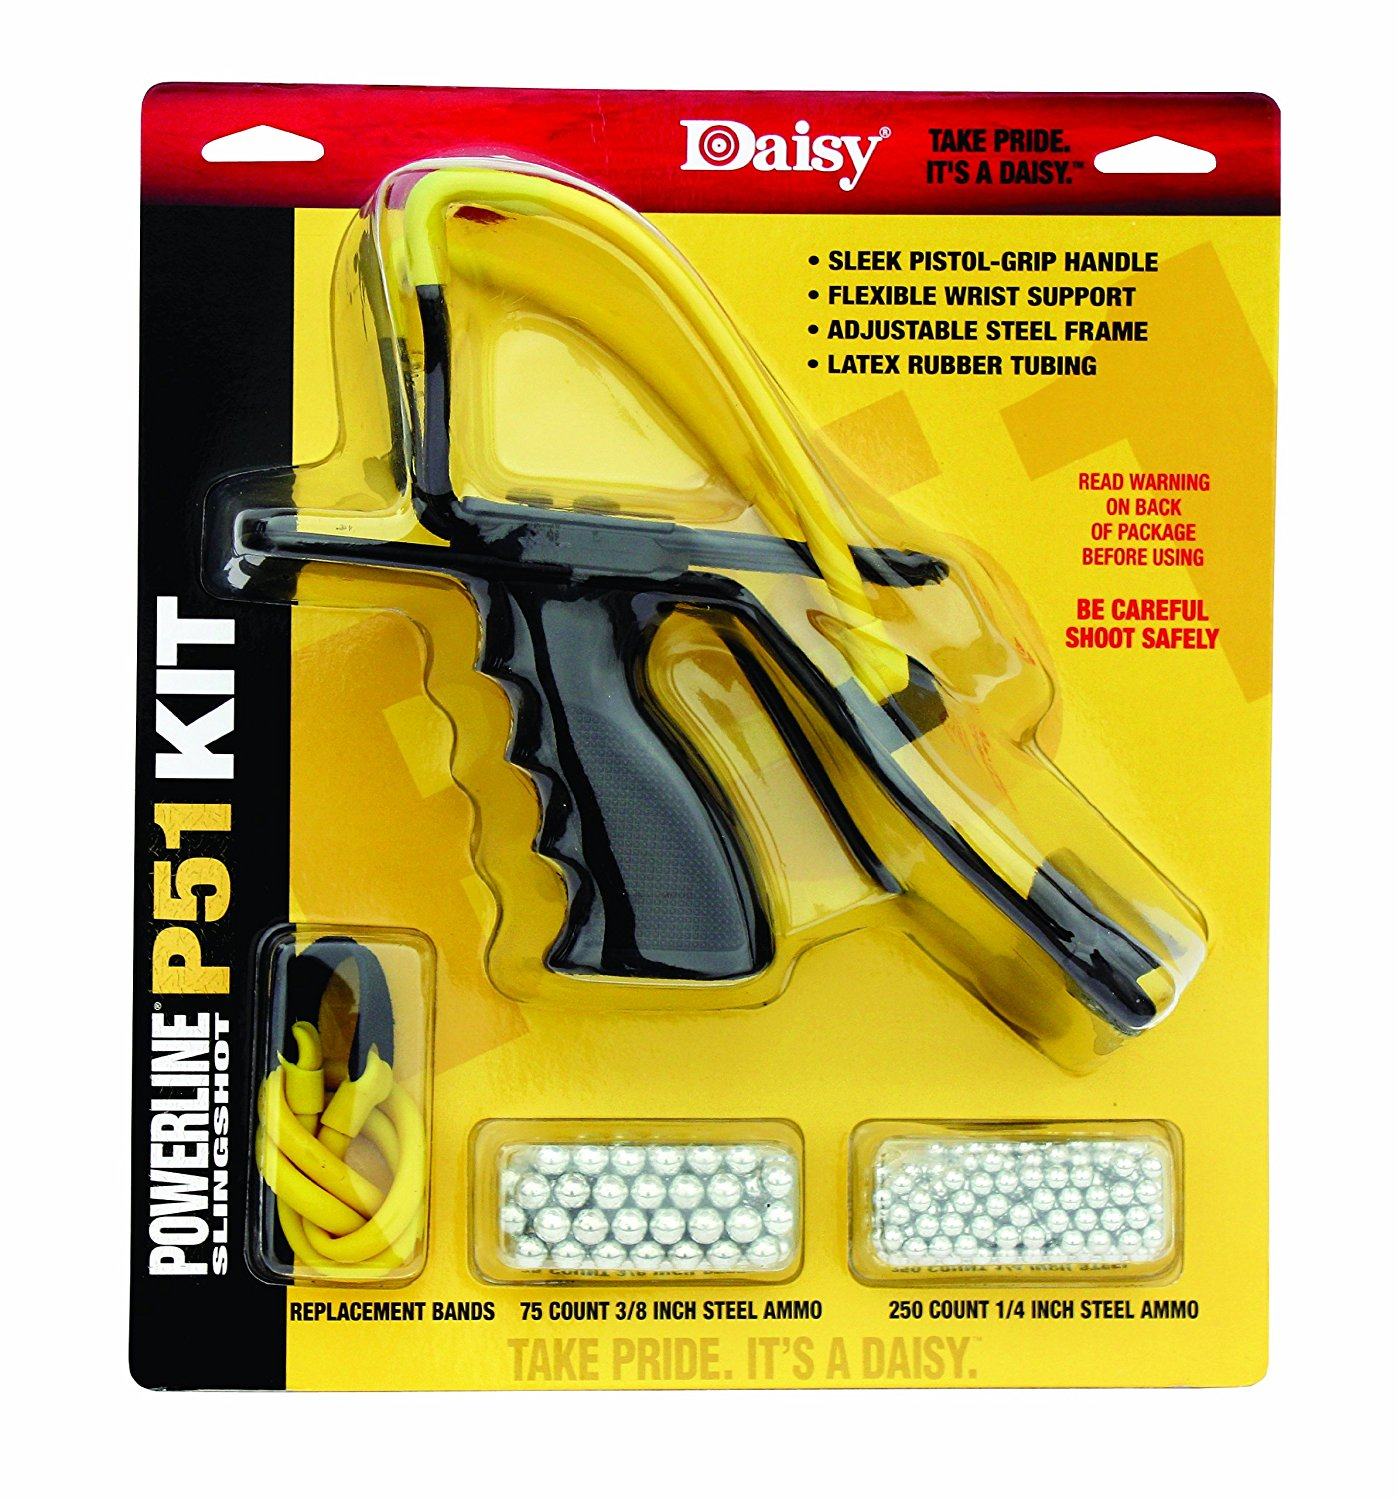 Outdoor Products P51 Slingshot Kit (Yellow Black, 8 Inch), Shoots 1 4 or 3 8 steel and 1 2 glass shot By Daisy by